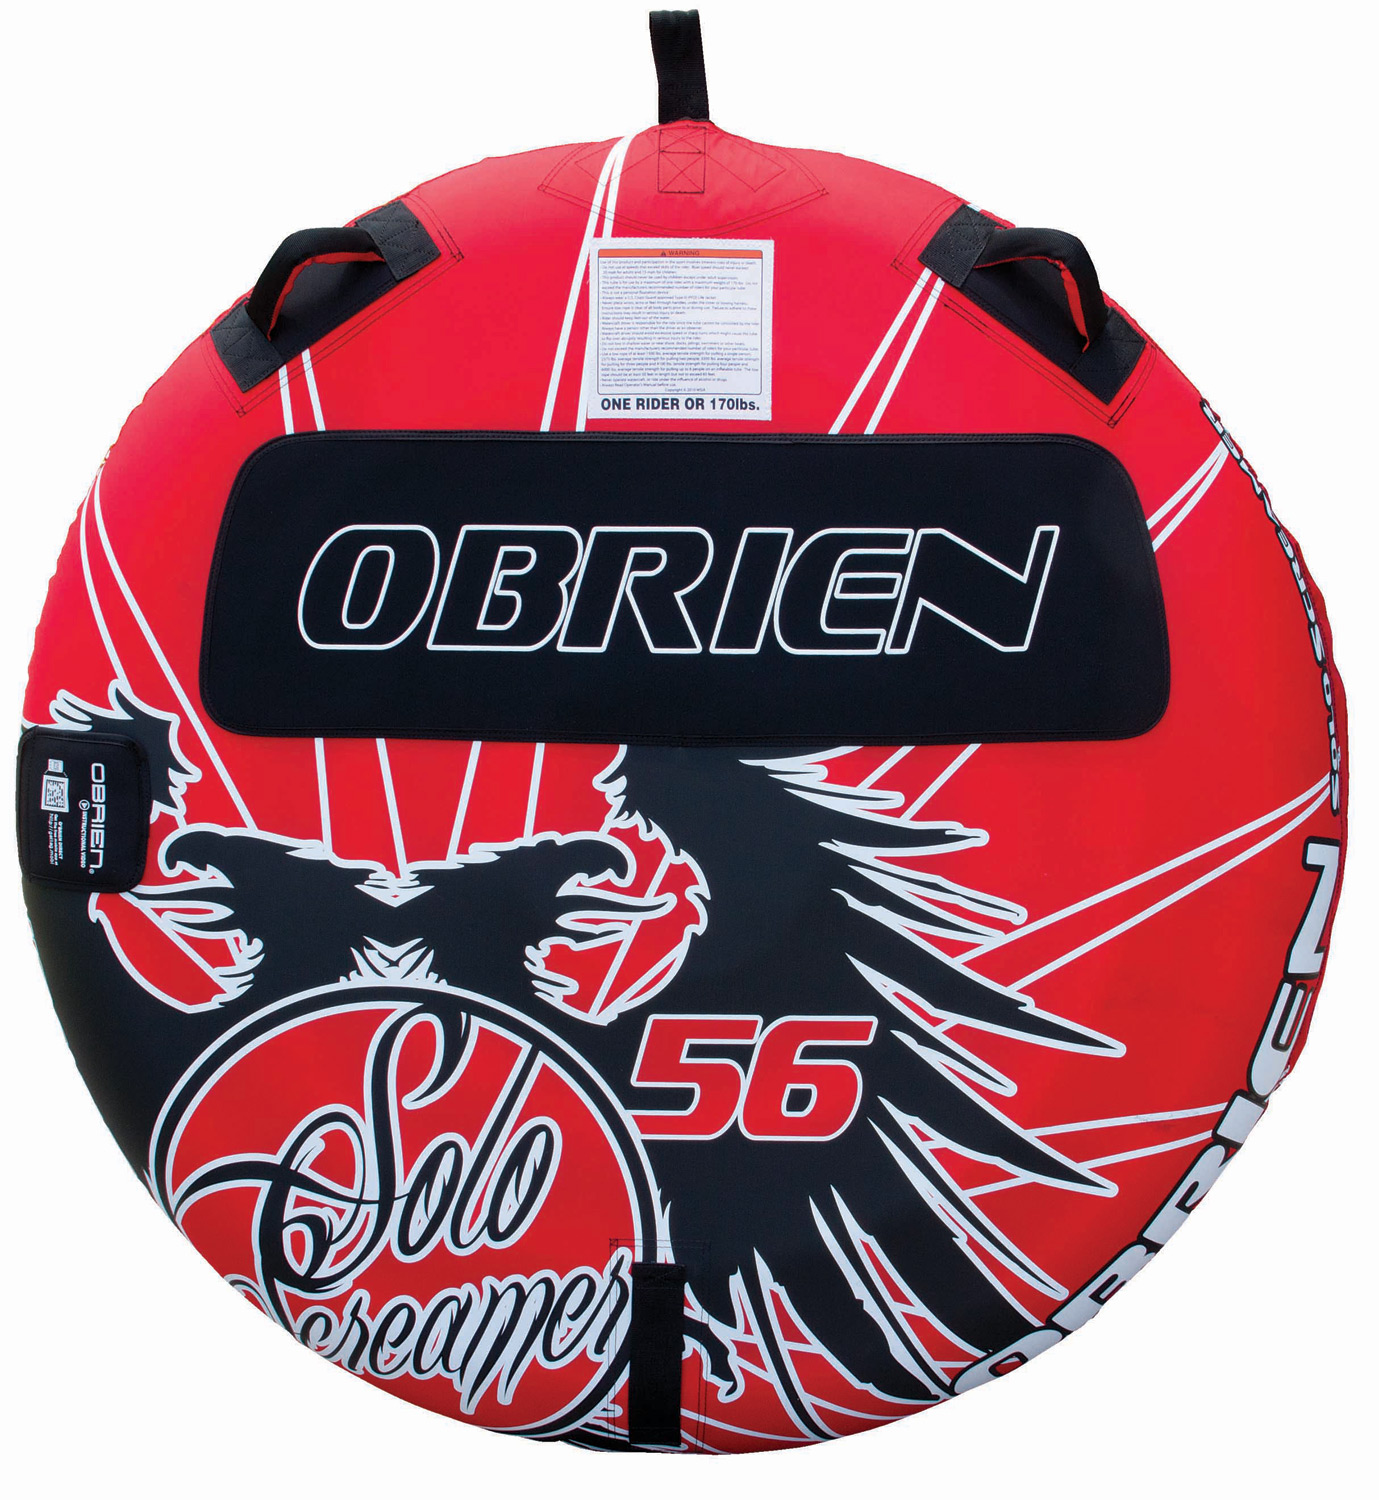 "The O'Brien Solo Screamer Tube is designed for the single rider who wants to own his own adventure. This heavy duty tube is made from durable PVC plastic and has two handles that are important for keeping the rider aboard. The handles, though, are also built to protect the knuckles from scrapes and bruises. With a small pad to ensure comfort, this tube is perfect for the water-loving athlete who prefers comfort when tubing on the lake.Key Features of the O'Brien Solo Screamer Tube:  56""  1 Rider  24 Gauge PVC  Fully Covered 420 D Nylon  2 Handles with EVA Knuckle-Guards  EVA Pad  1 Boston Valve  One Year Limited Warranty - $99.99"